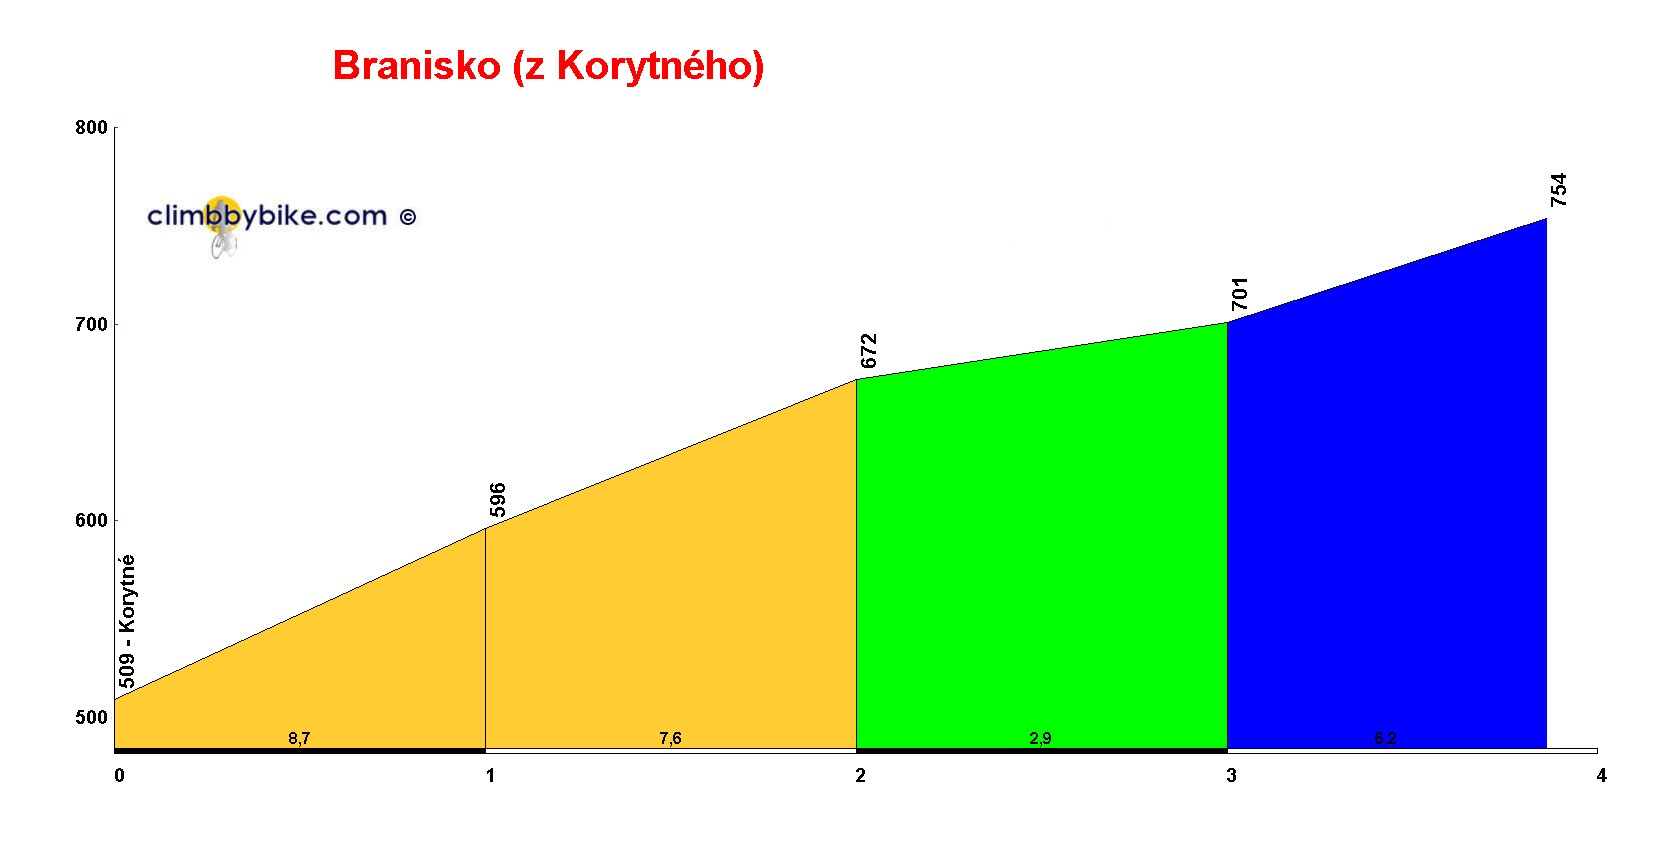 Elevation profile for Branisko z Korytného